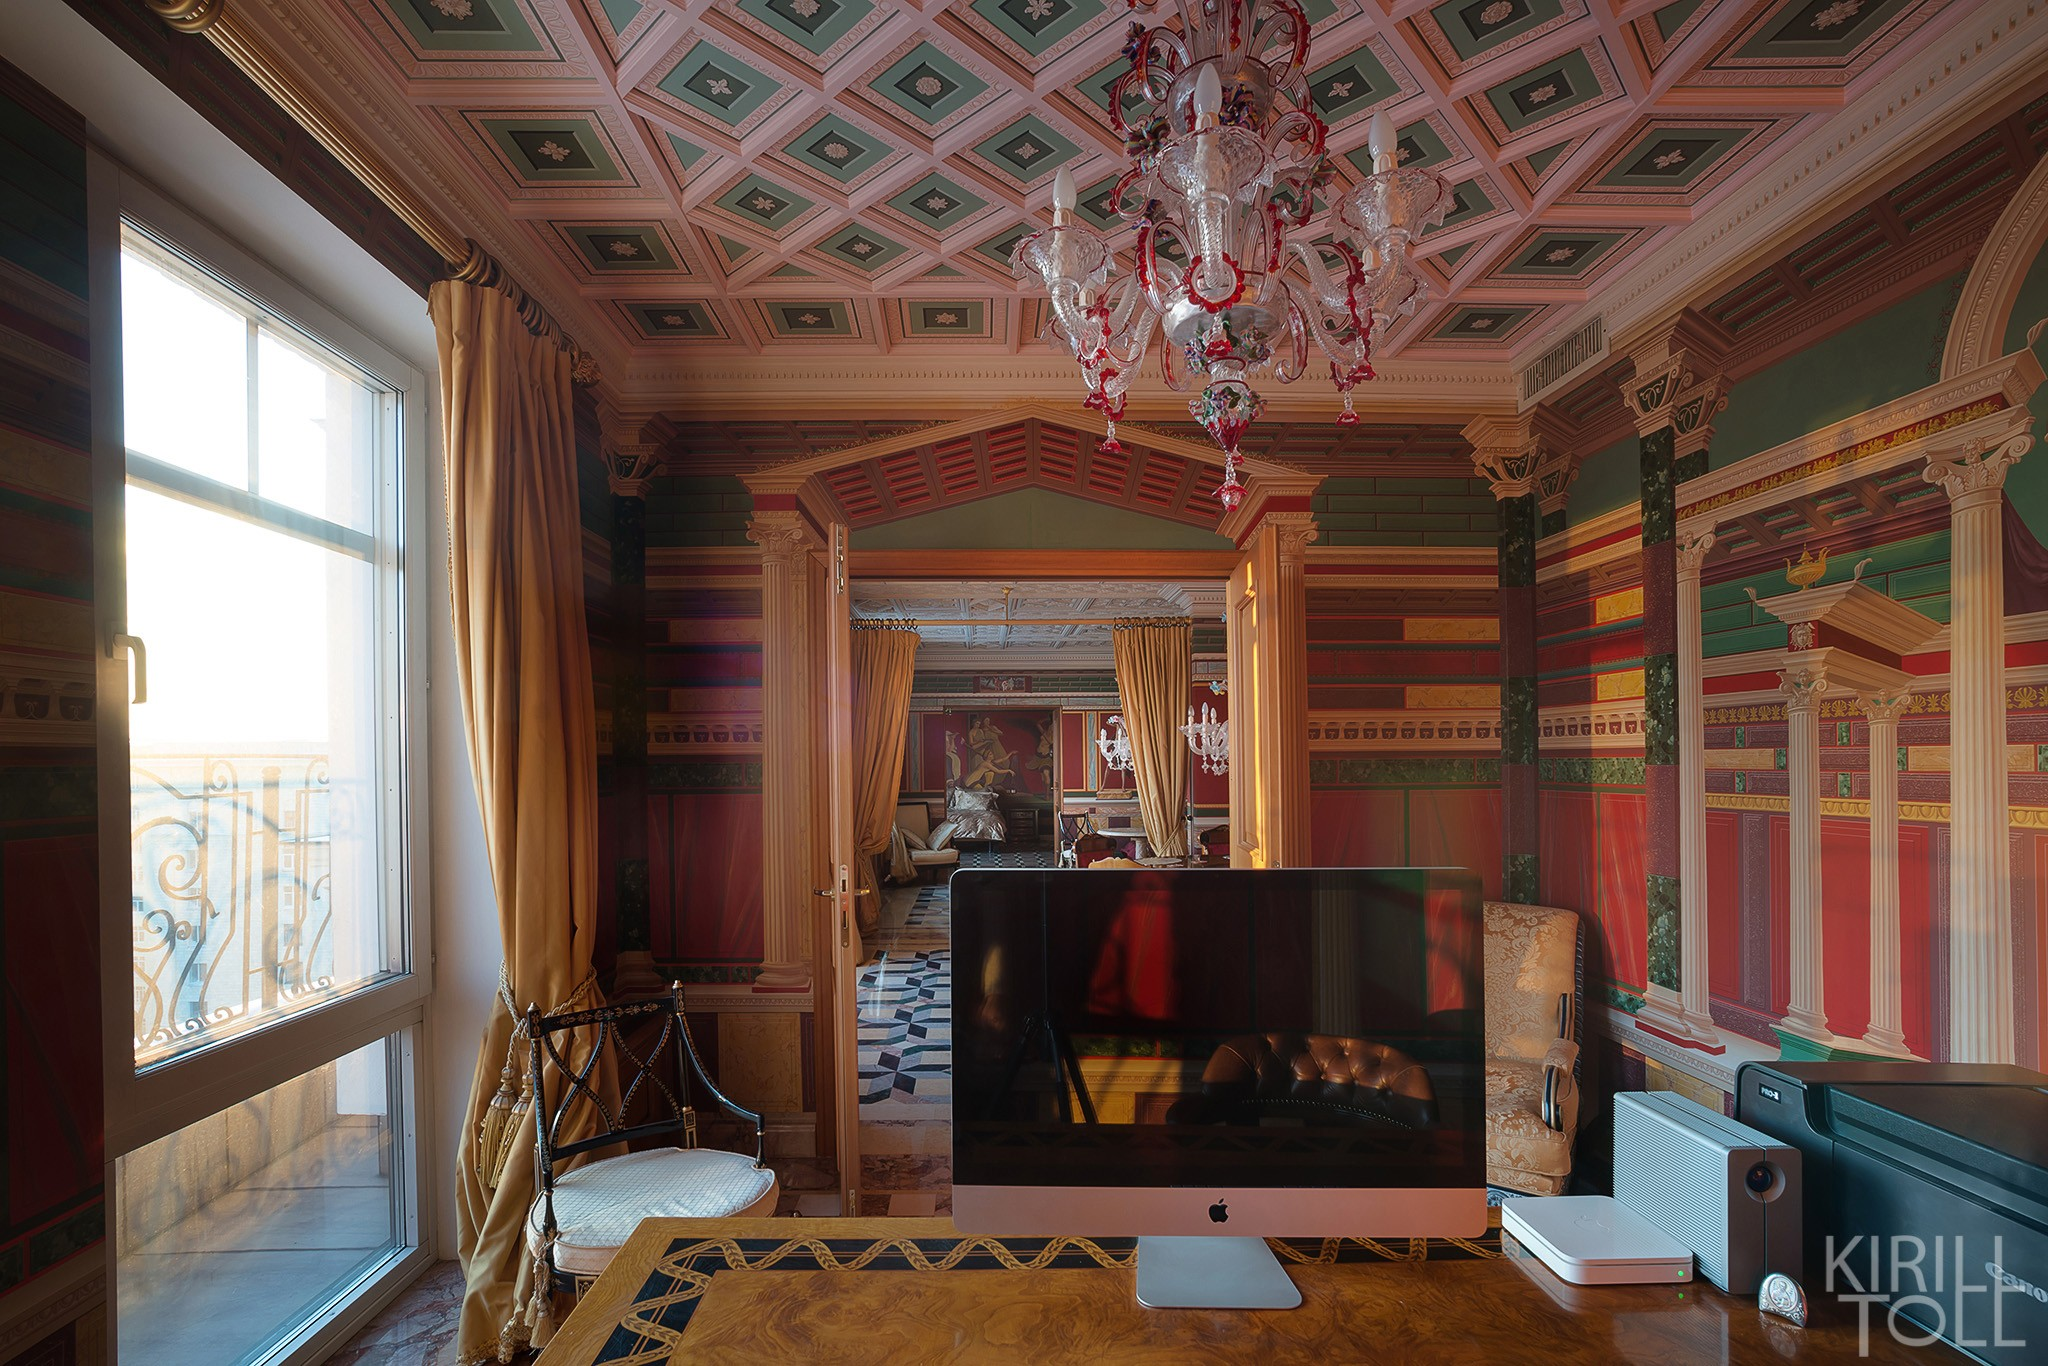 The most amazing apartments. Interior photography in Moscow